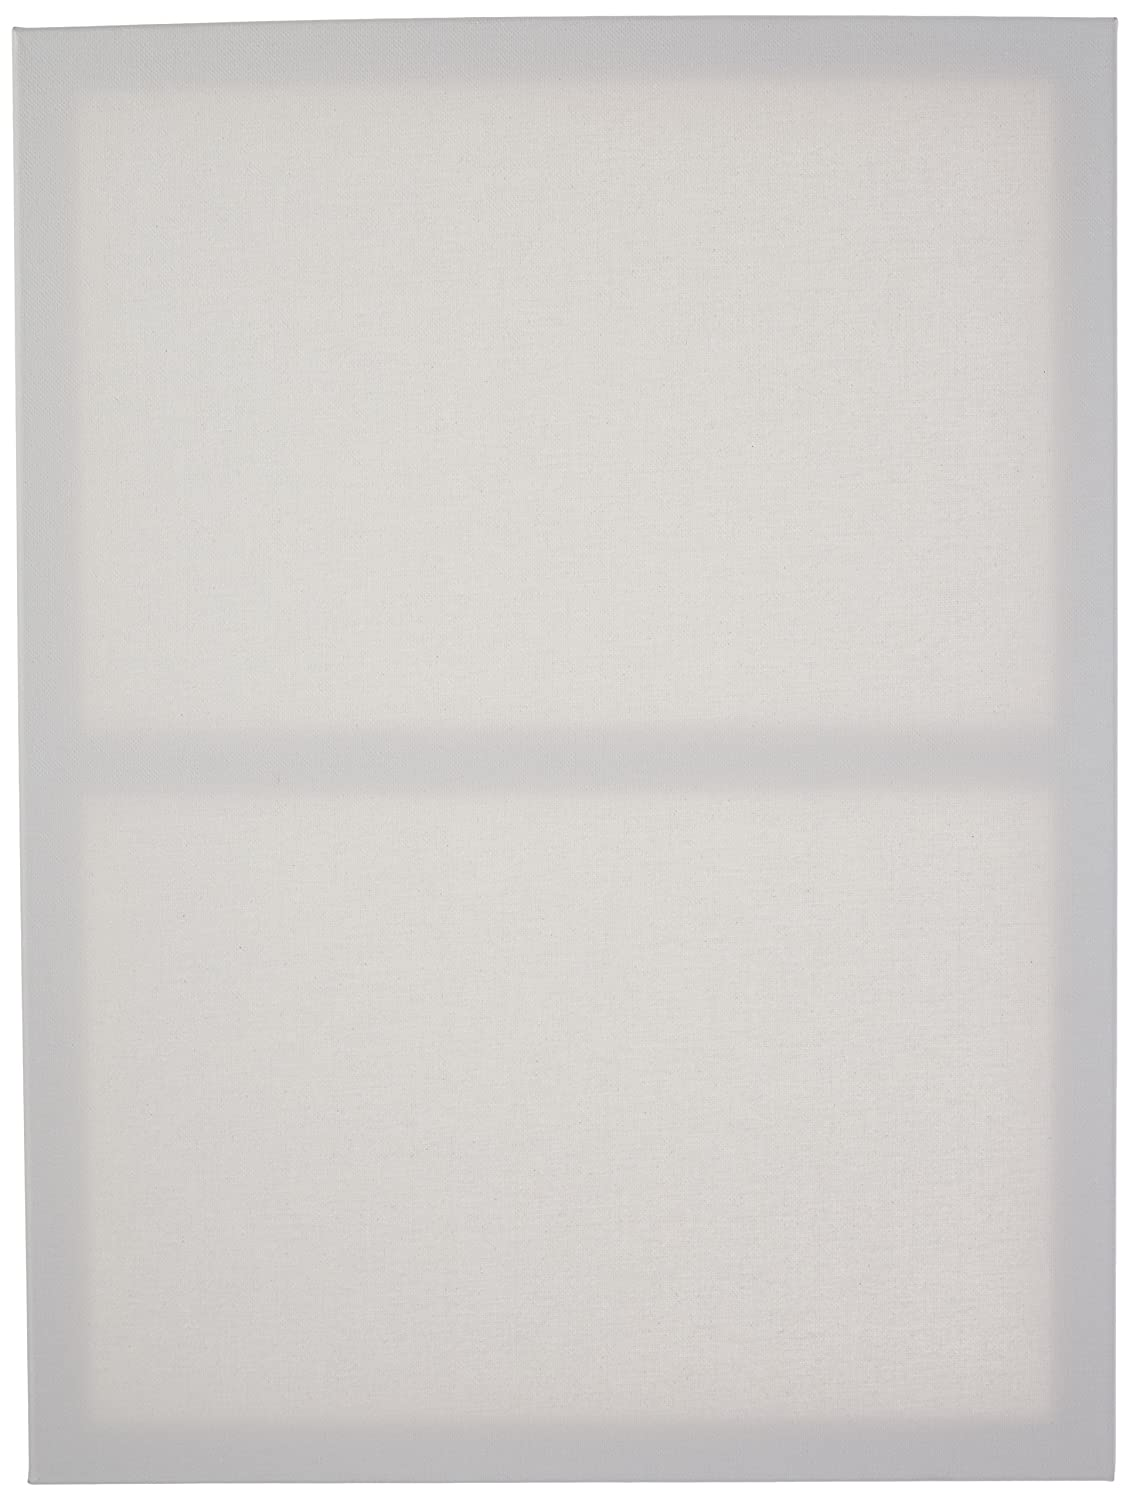 """Darice Studio 71 Medium Weight Traditional Stretched Canvas – 11"""" x 14"""" Canvas for Oil or Acrylic Paints, Triple Acrylic Primed Canvas on a Wood Frame"""